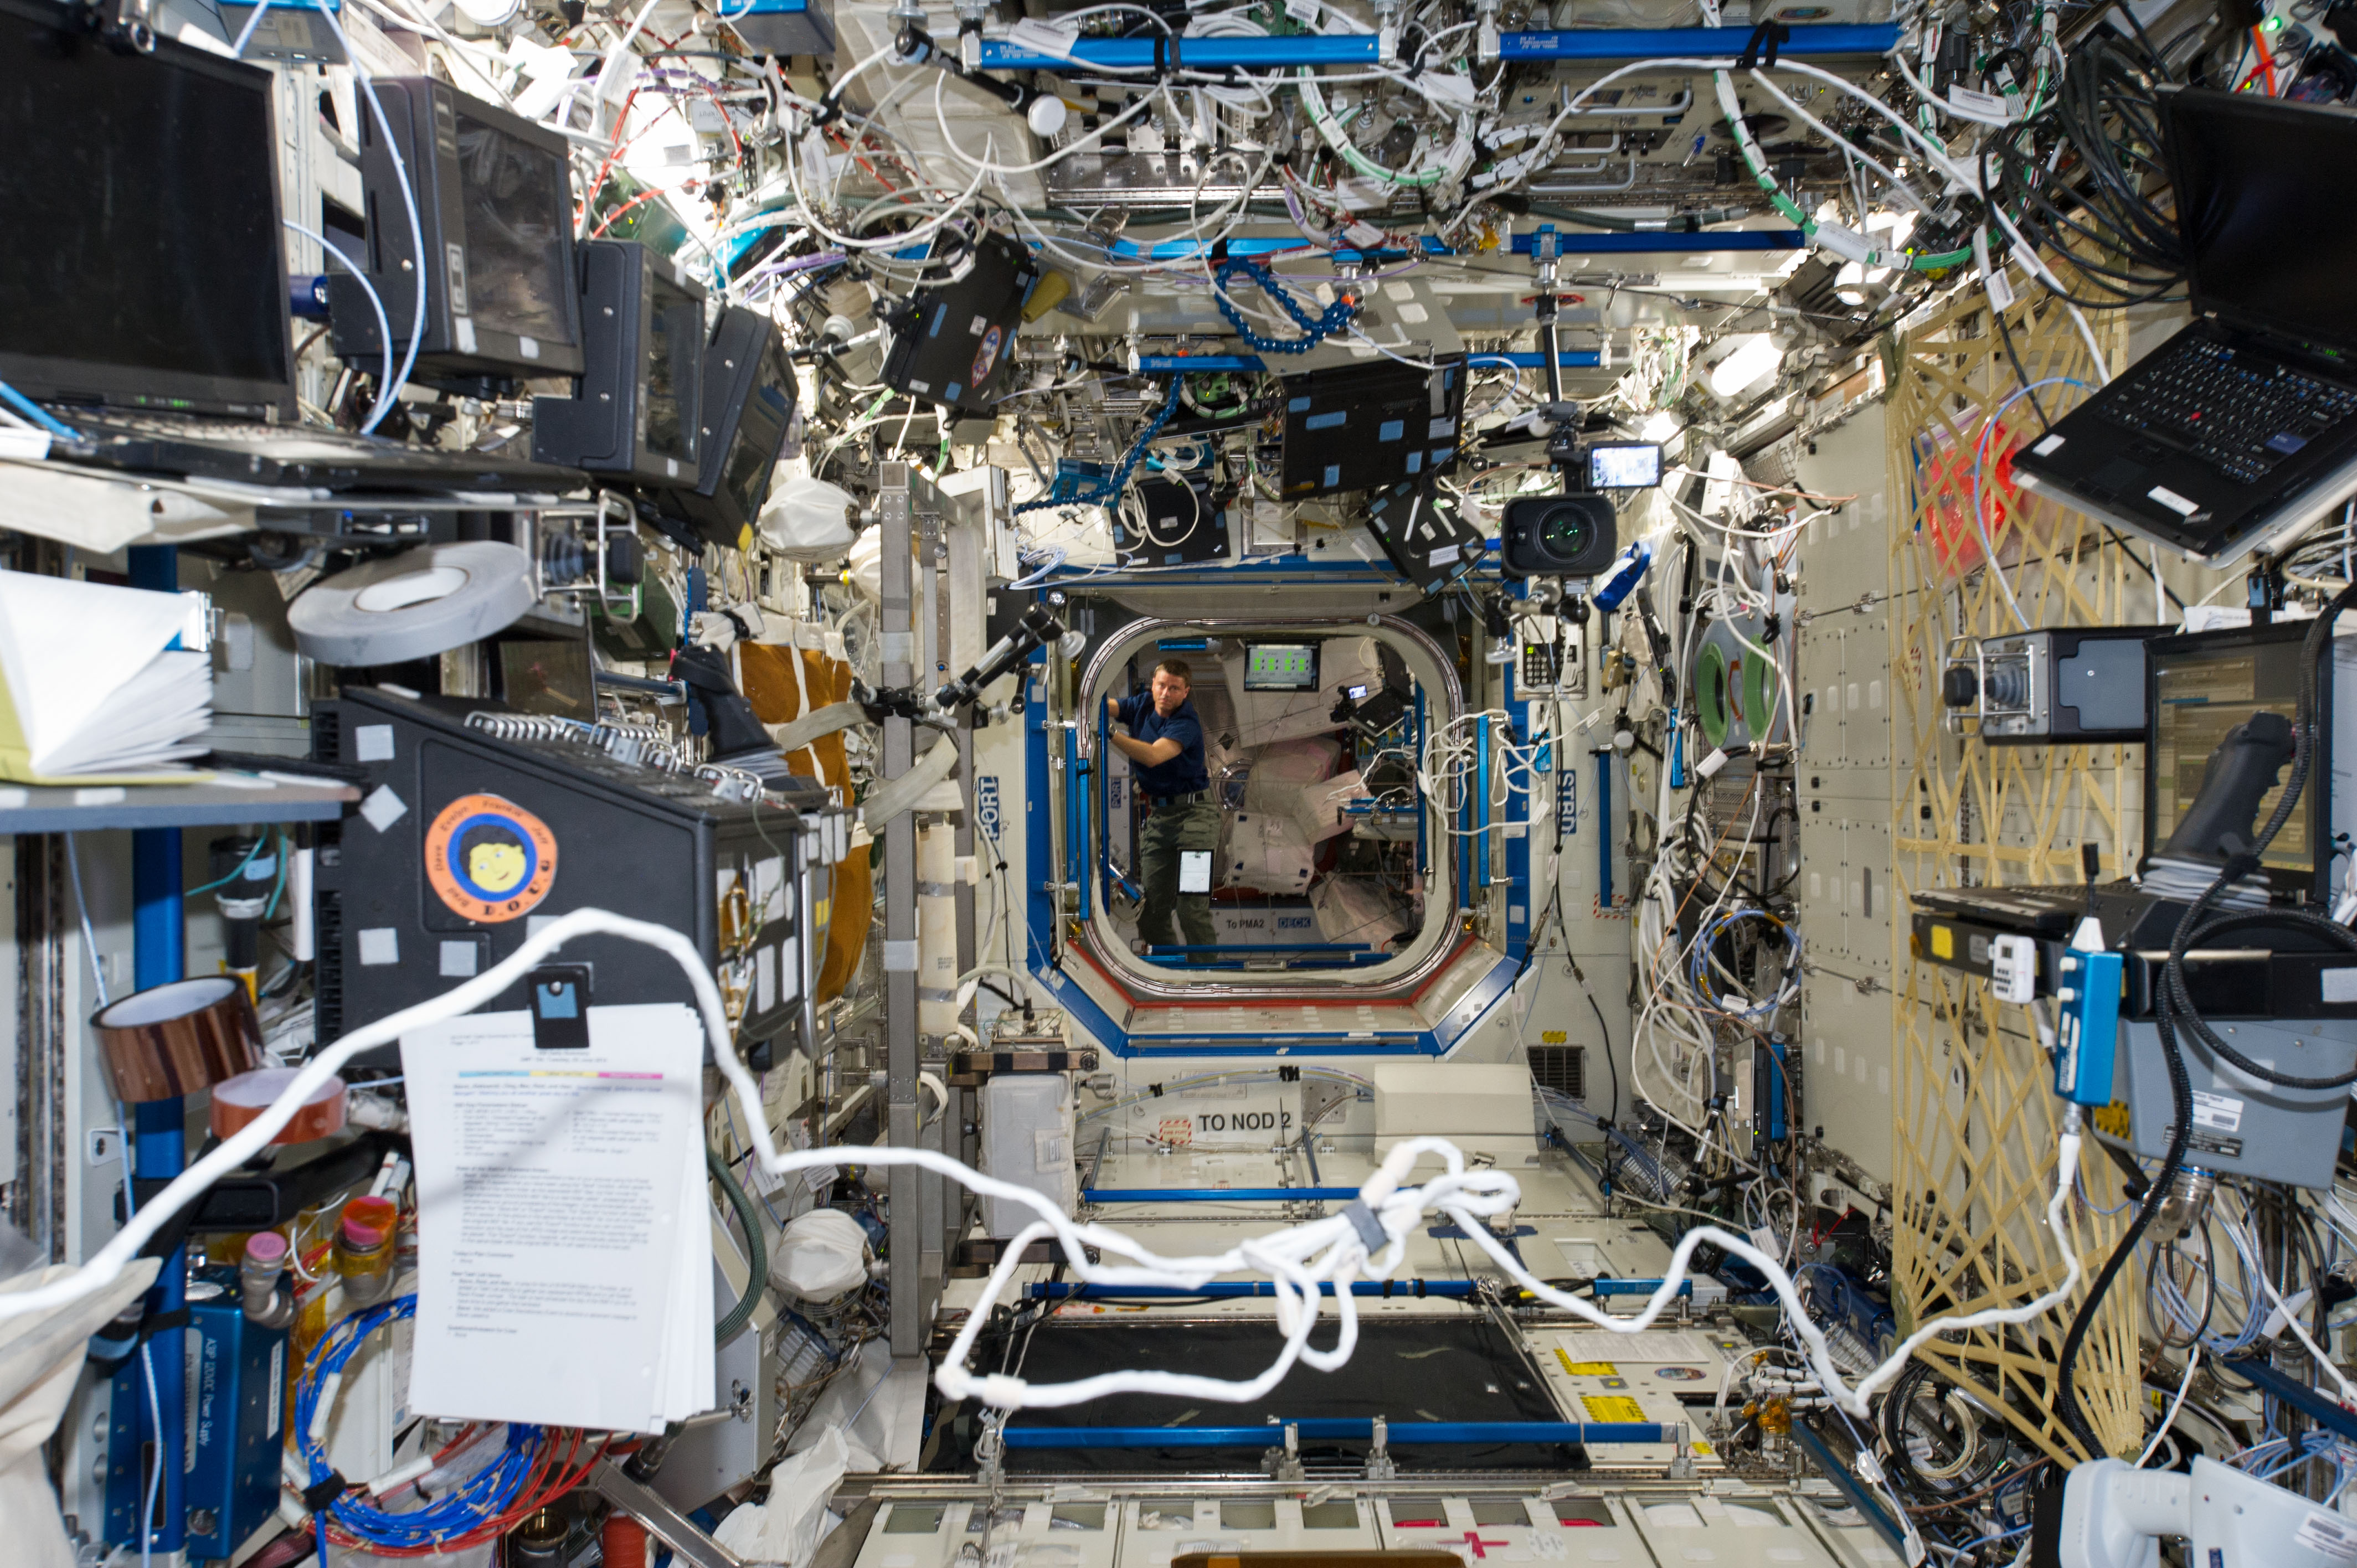 Photographed from the Destiny laboratory, NASA astronaut Reid Wiseman,  is in the Harmony node of the International Space Station.